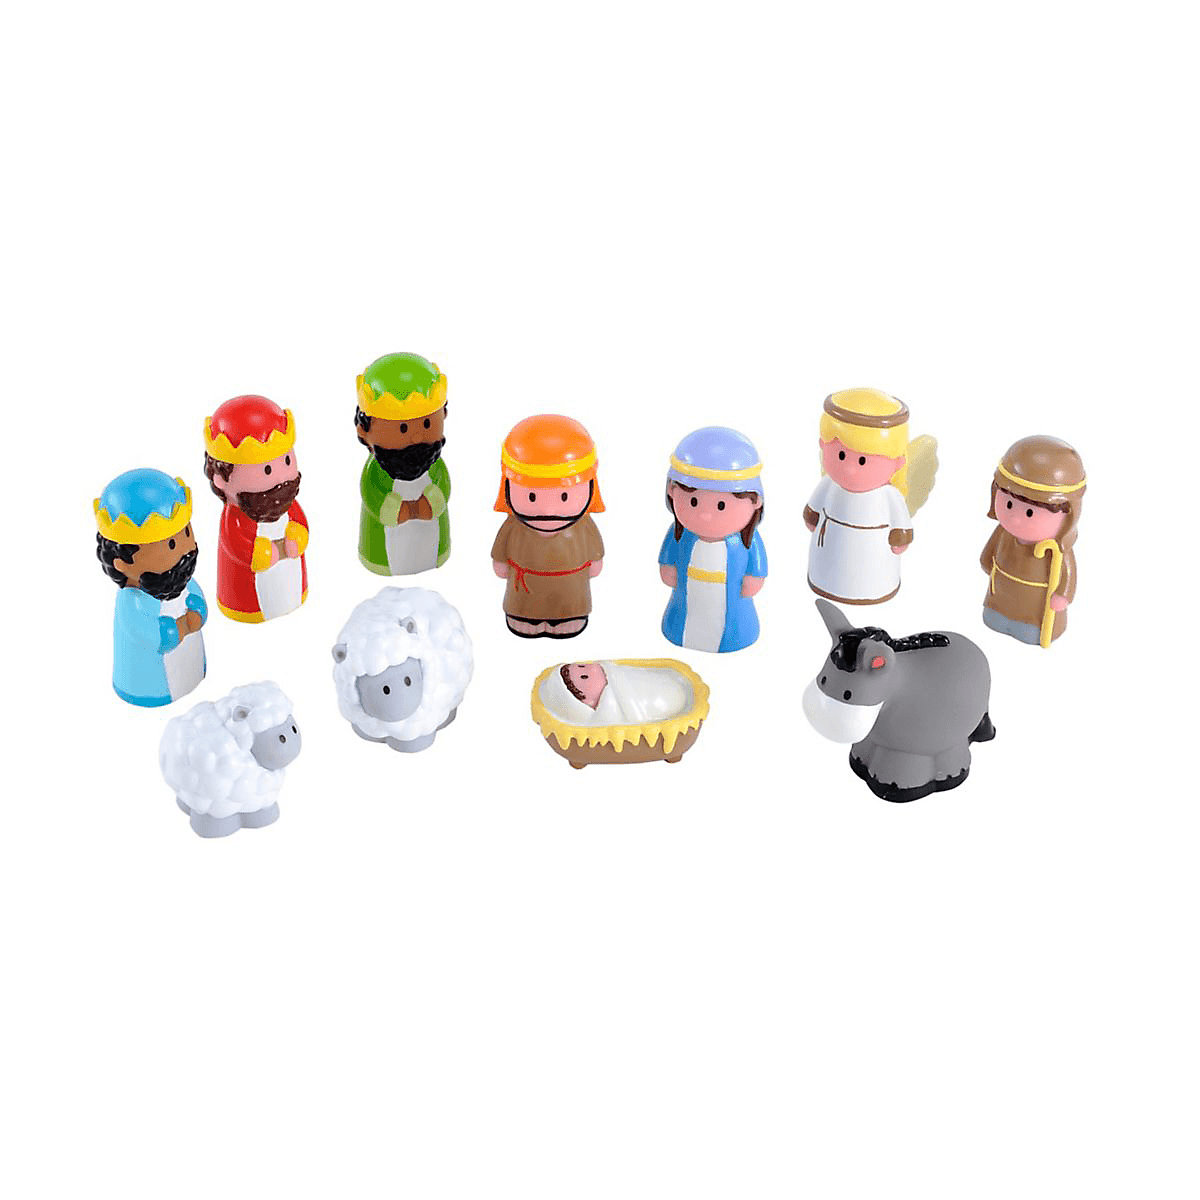 New ELC Boys and Girls Happyland Nativity Set Toy From 18 months - Brands Gifts